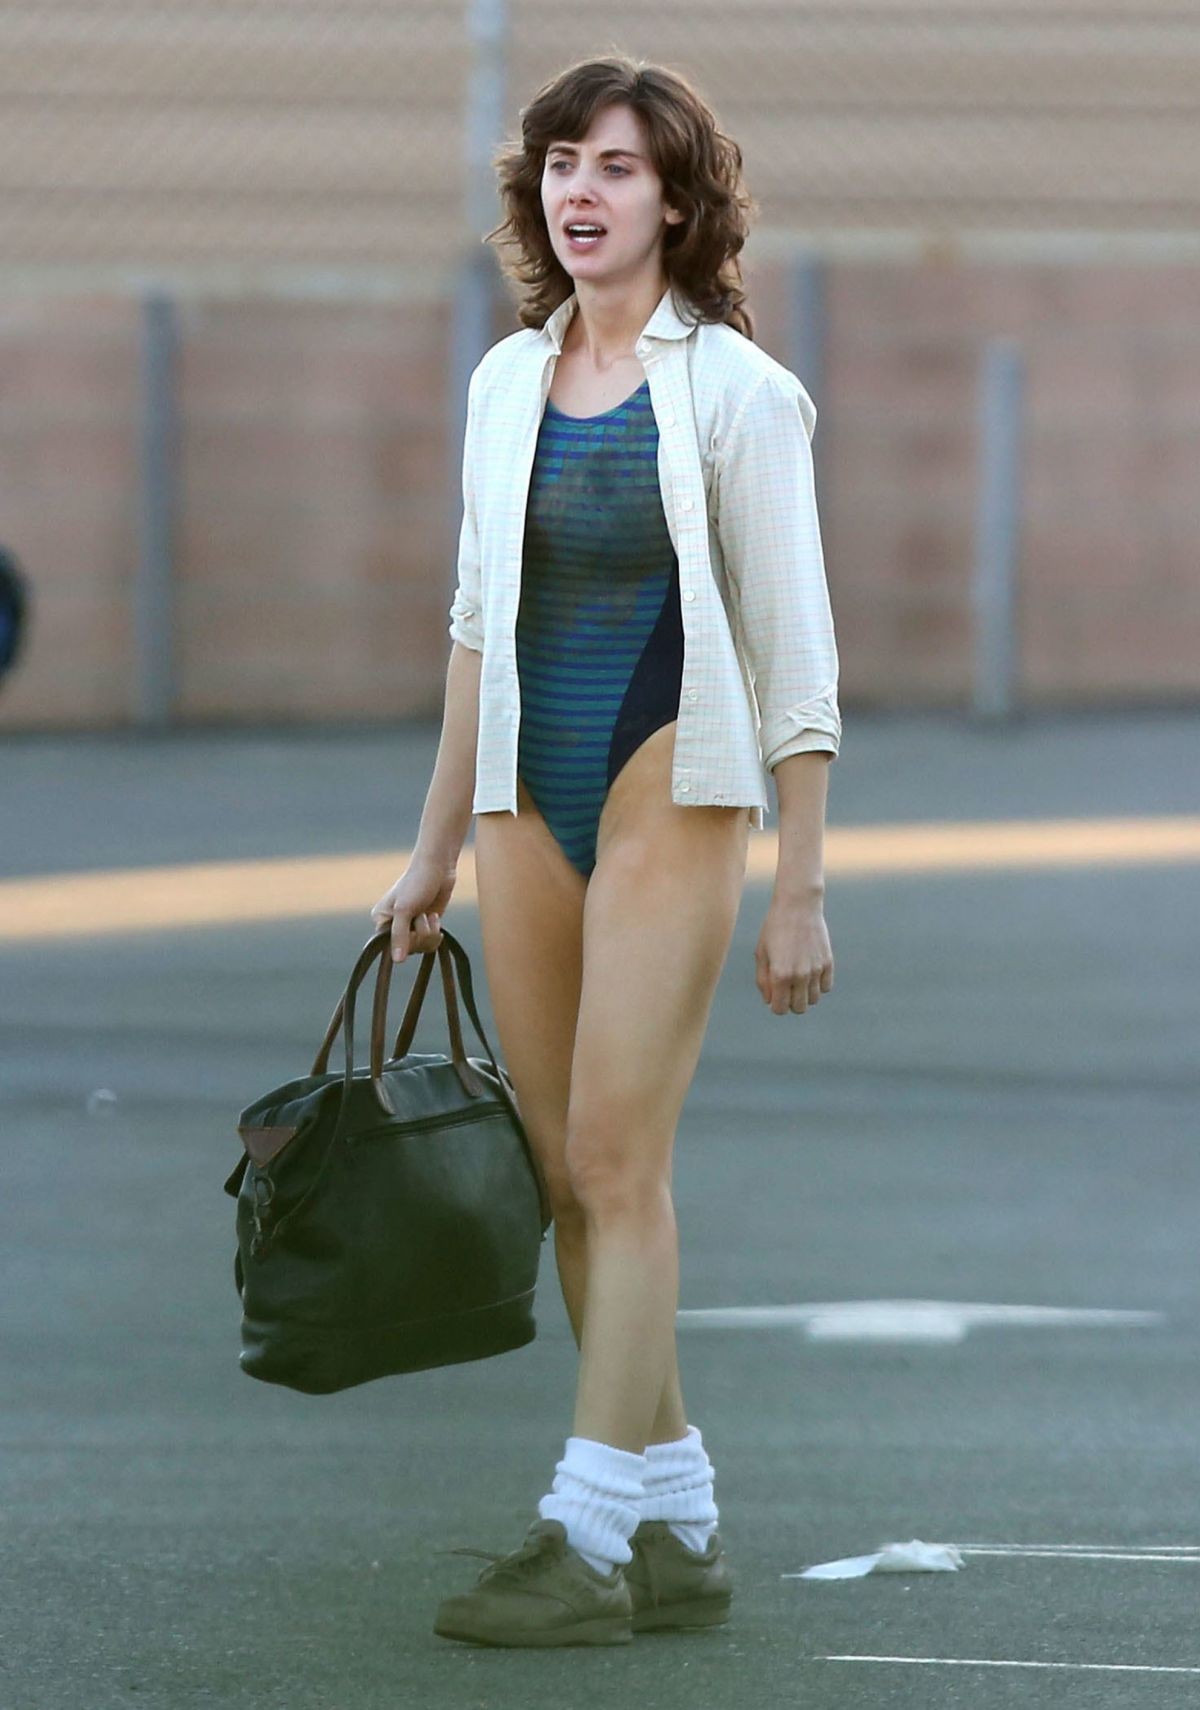 Alison Brie On The Set Of G L O W In Los Angeles